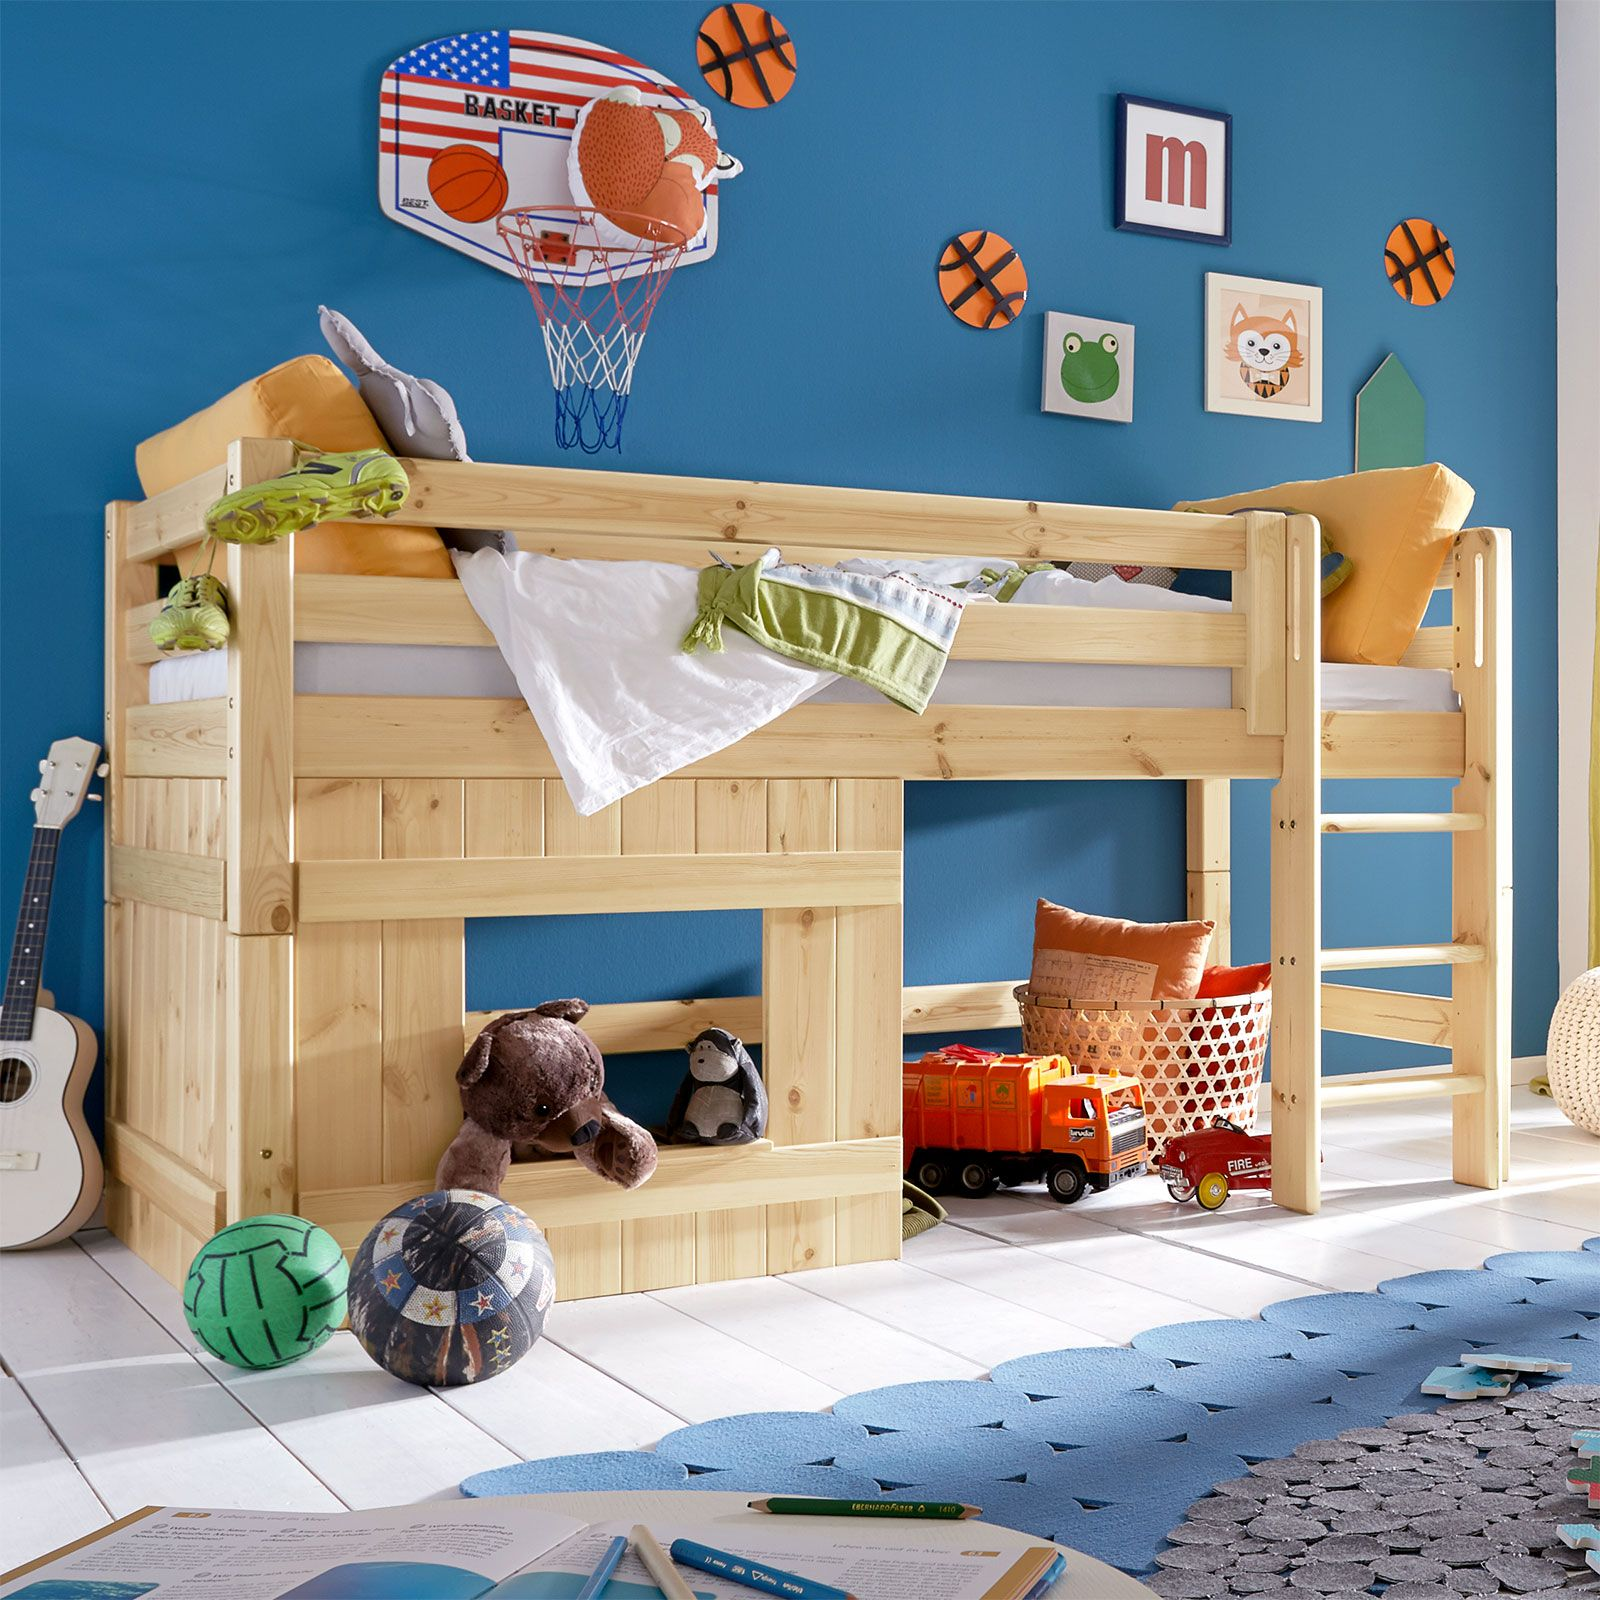 h tten hochbett kids paradise f r jungen kinderbett. Black Bedroom Furniture Sets. Home Design Ideas